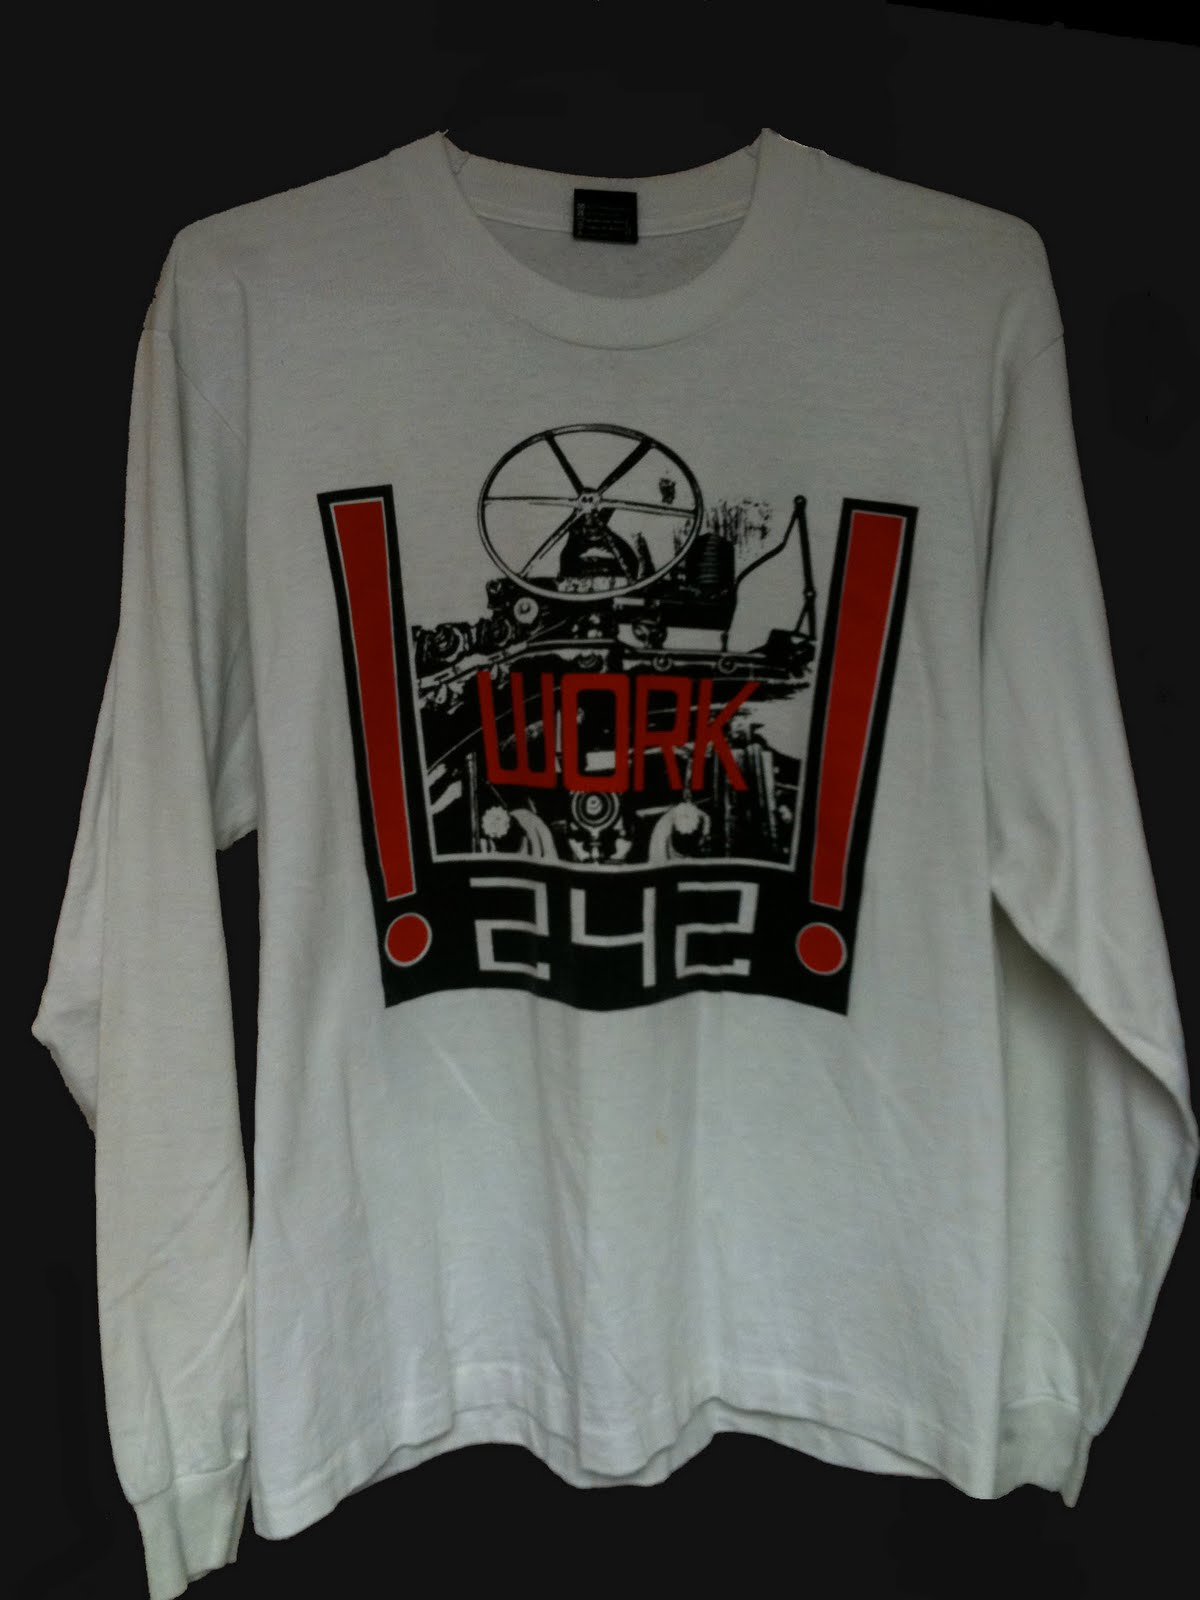 Target Work Shirts Front 242 Collector T Shirt Of The Week Work 242